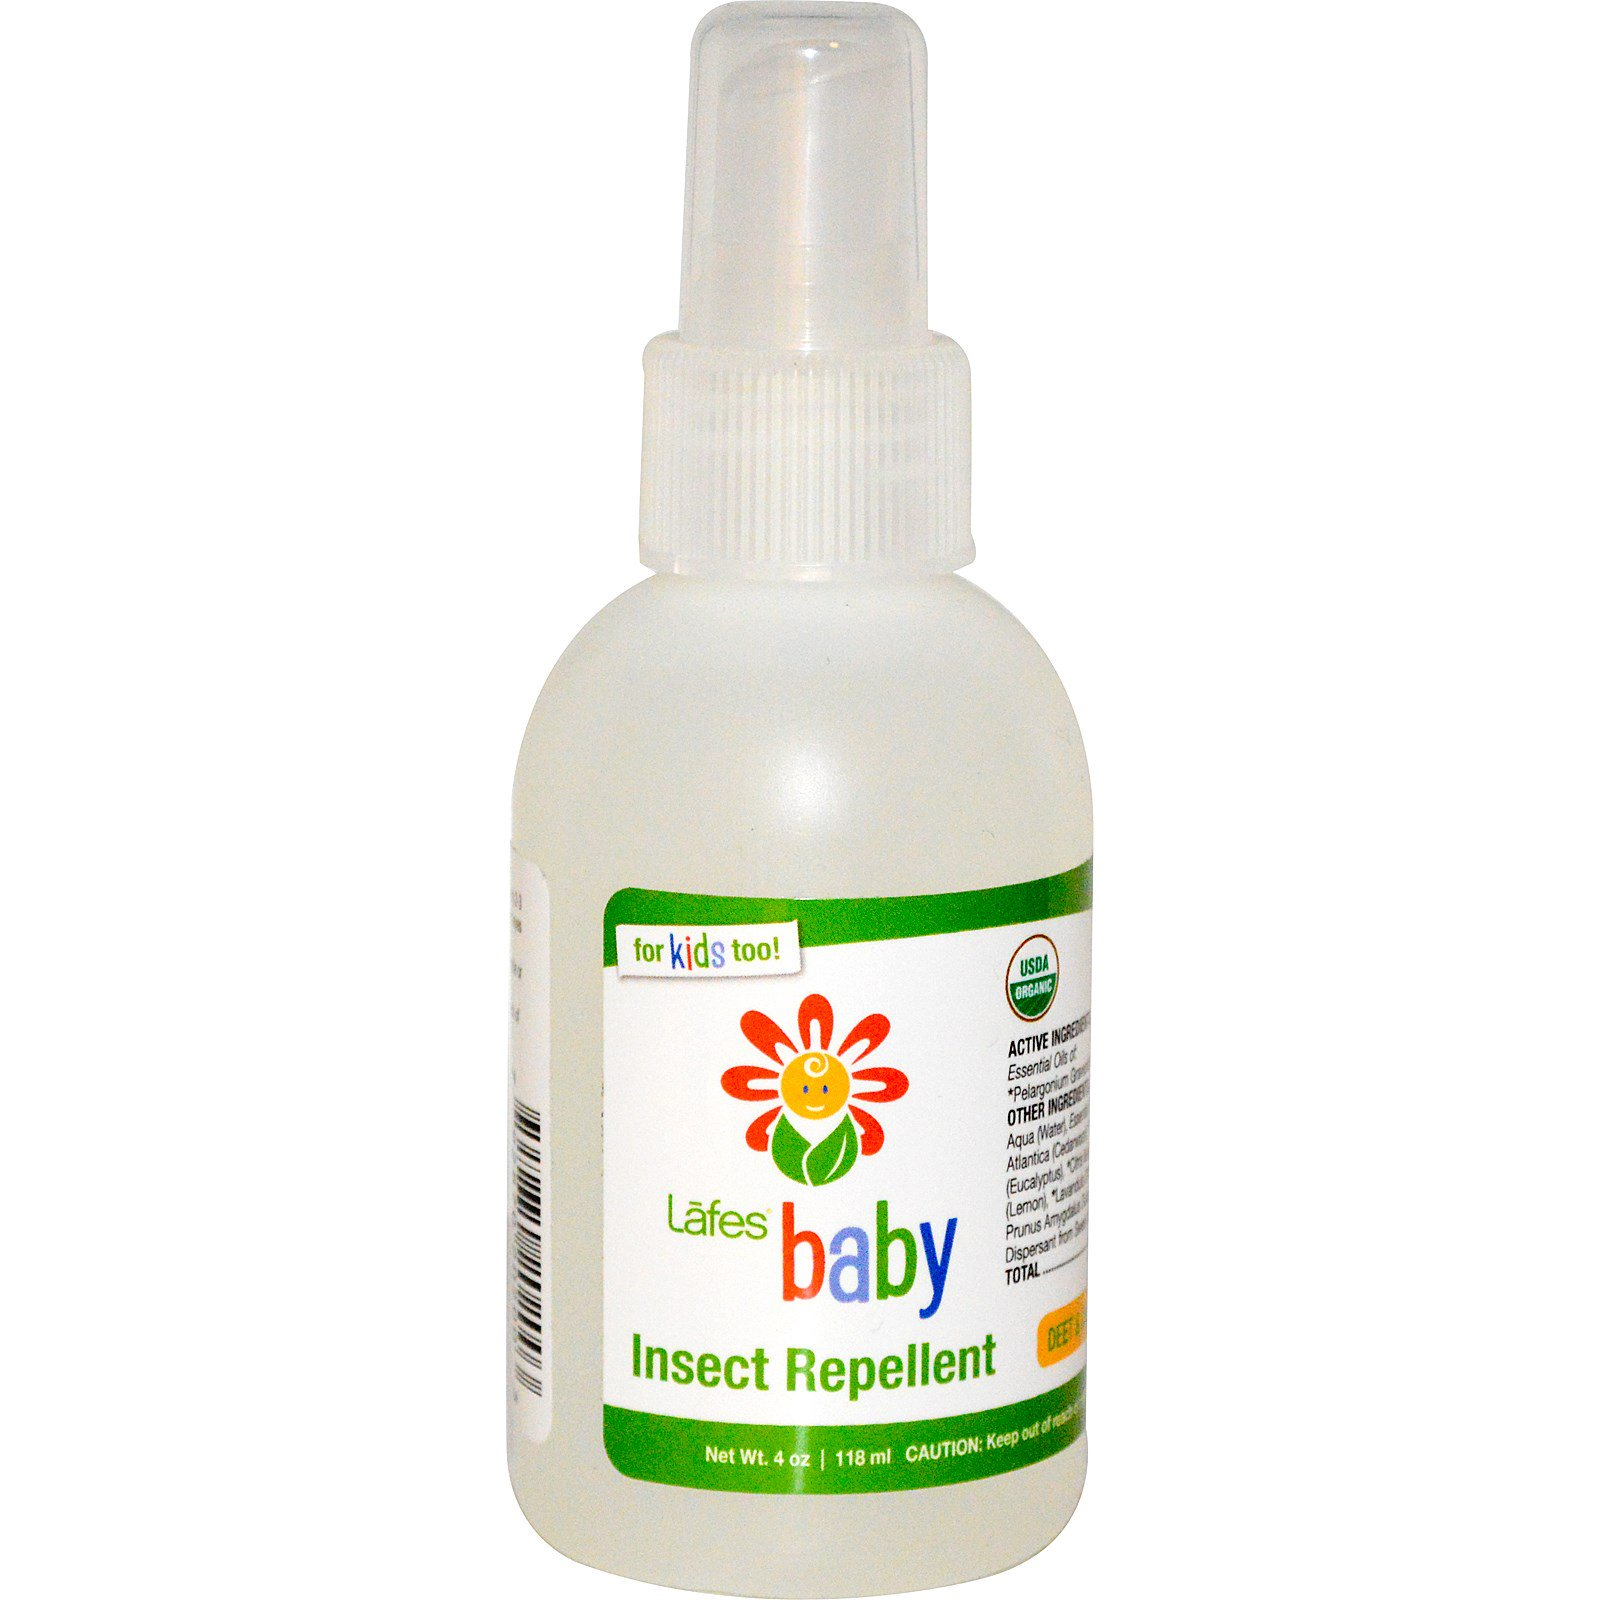 Baby mosquito protection